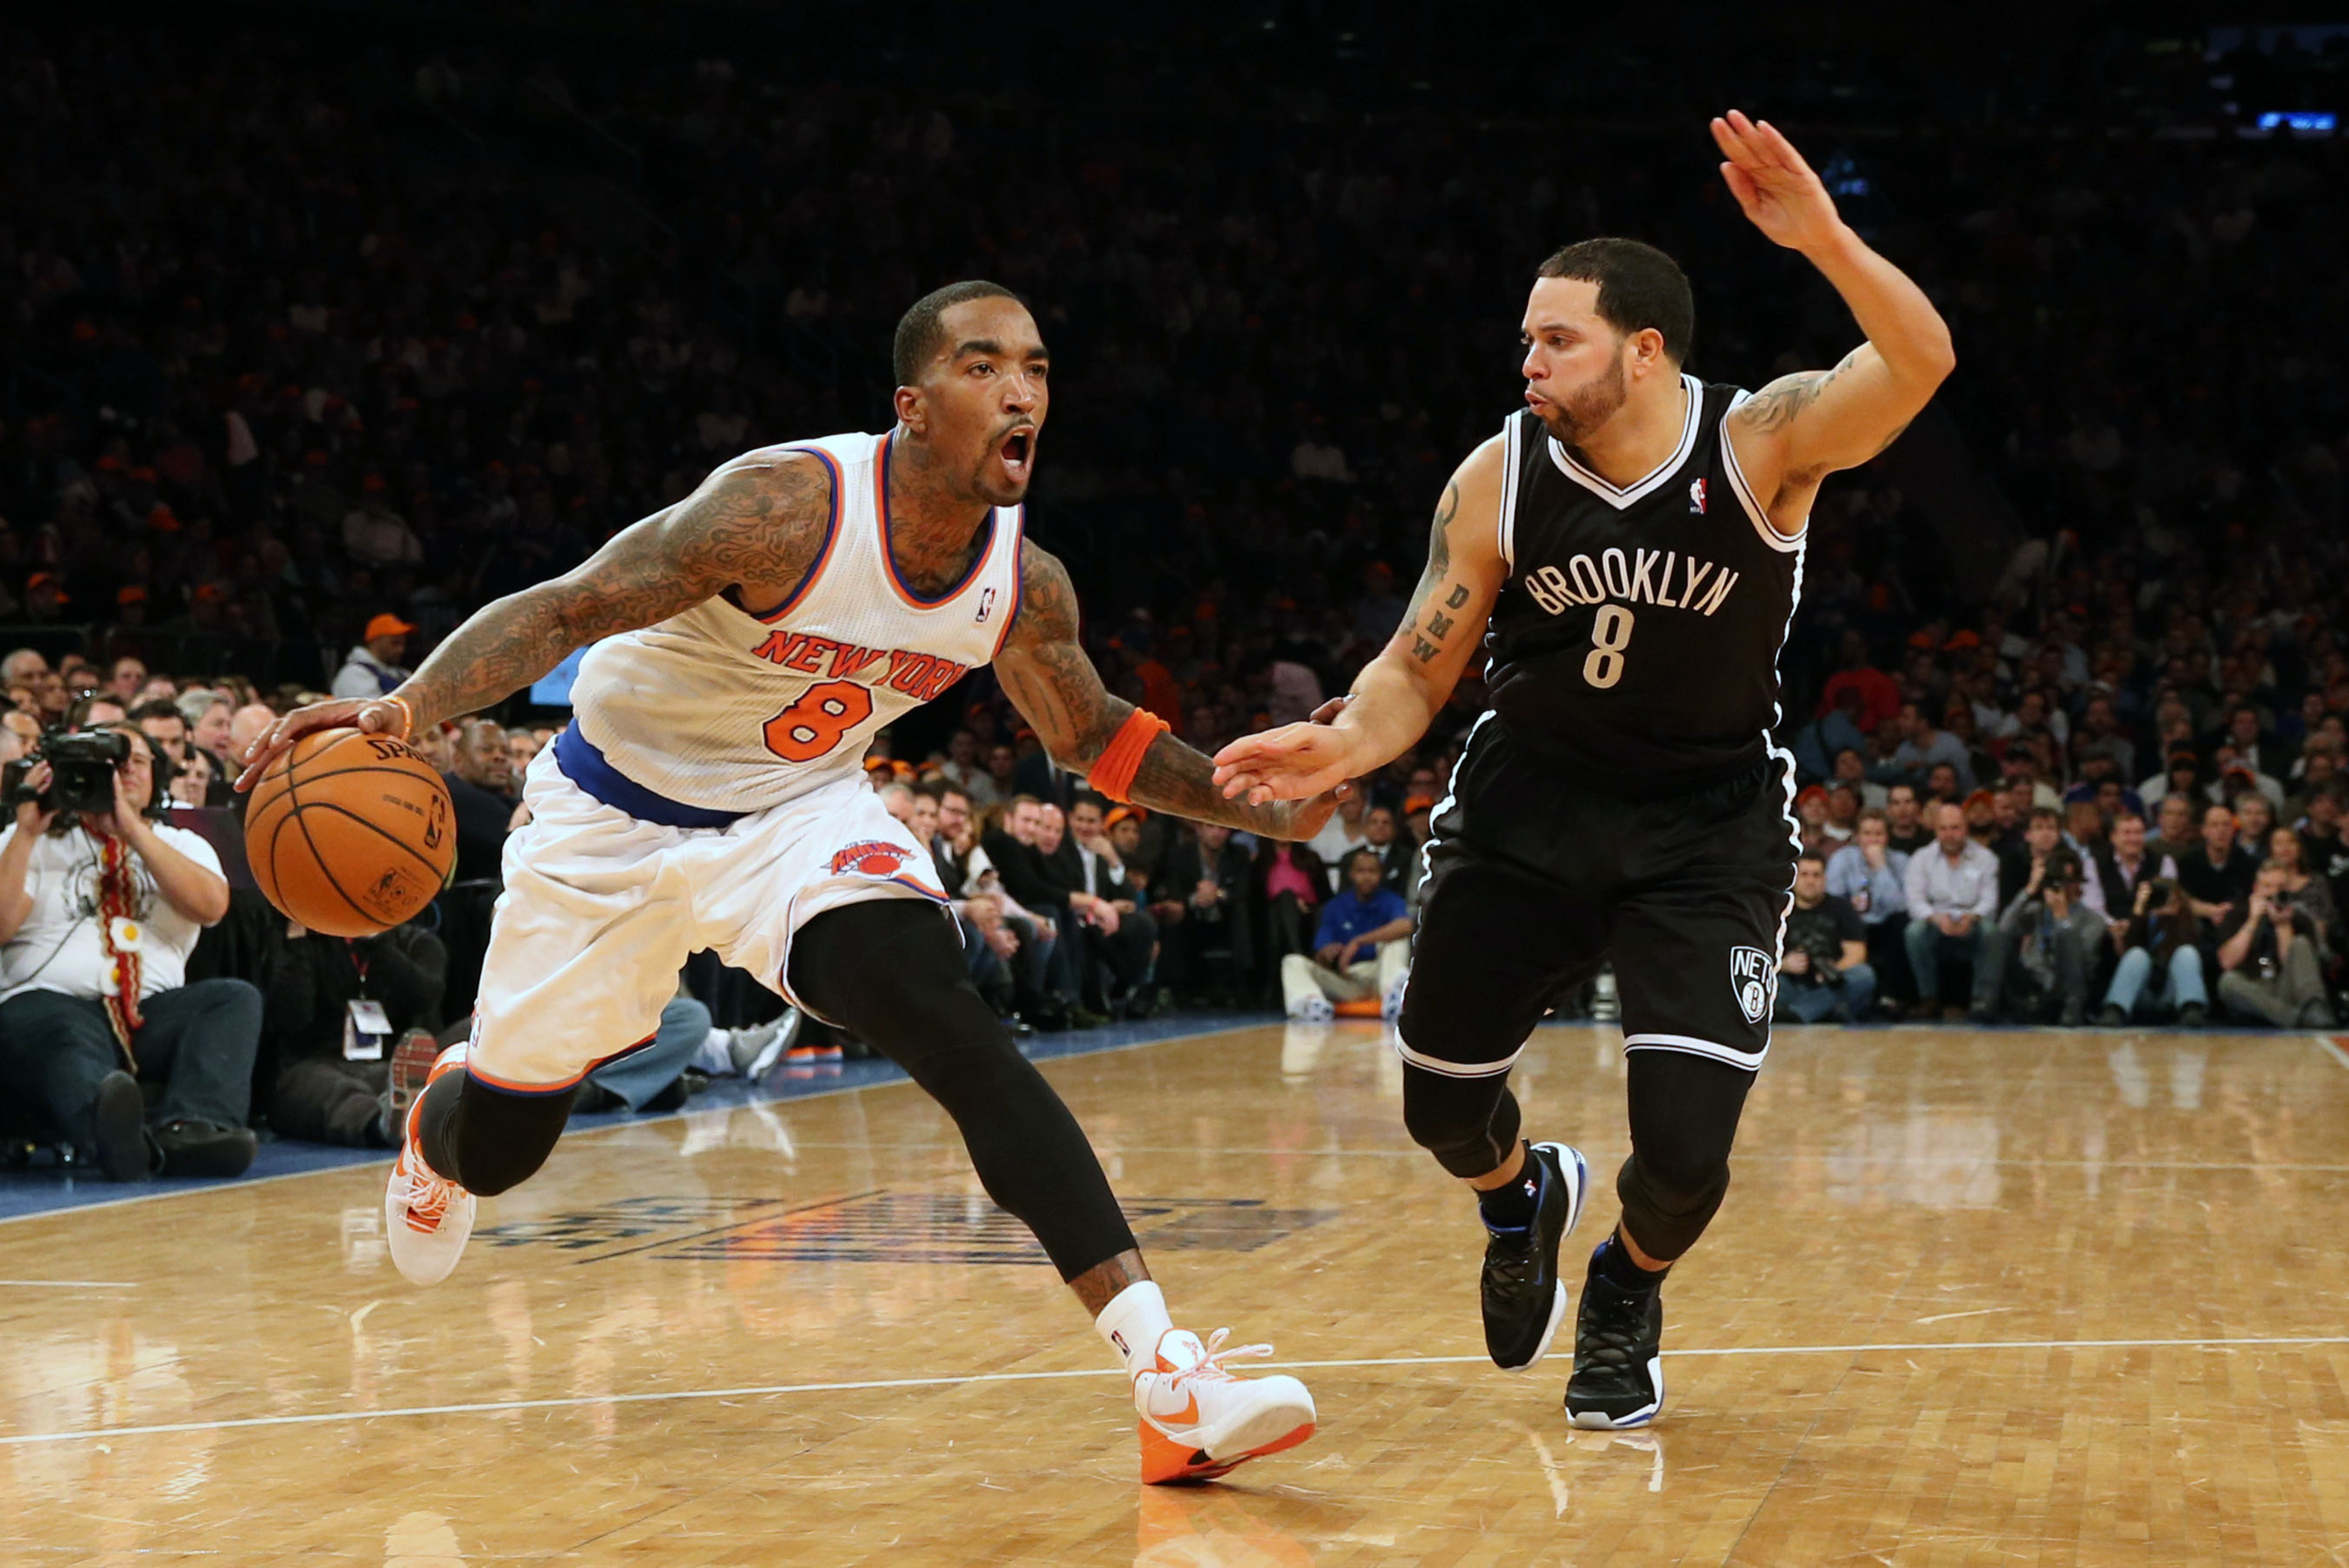 J.R. Smith '100 percent sure' Knicks will win 2014 title